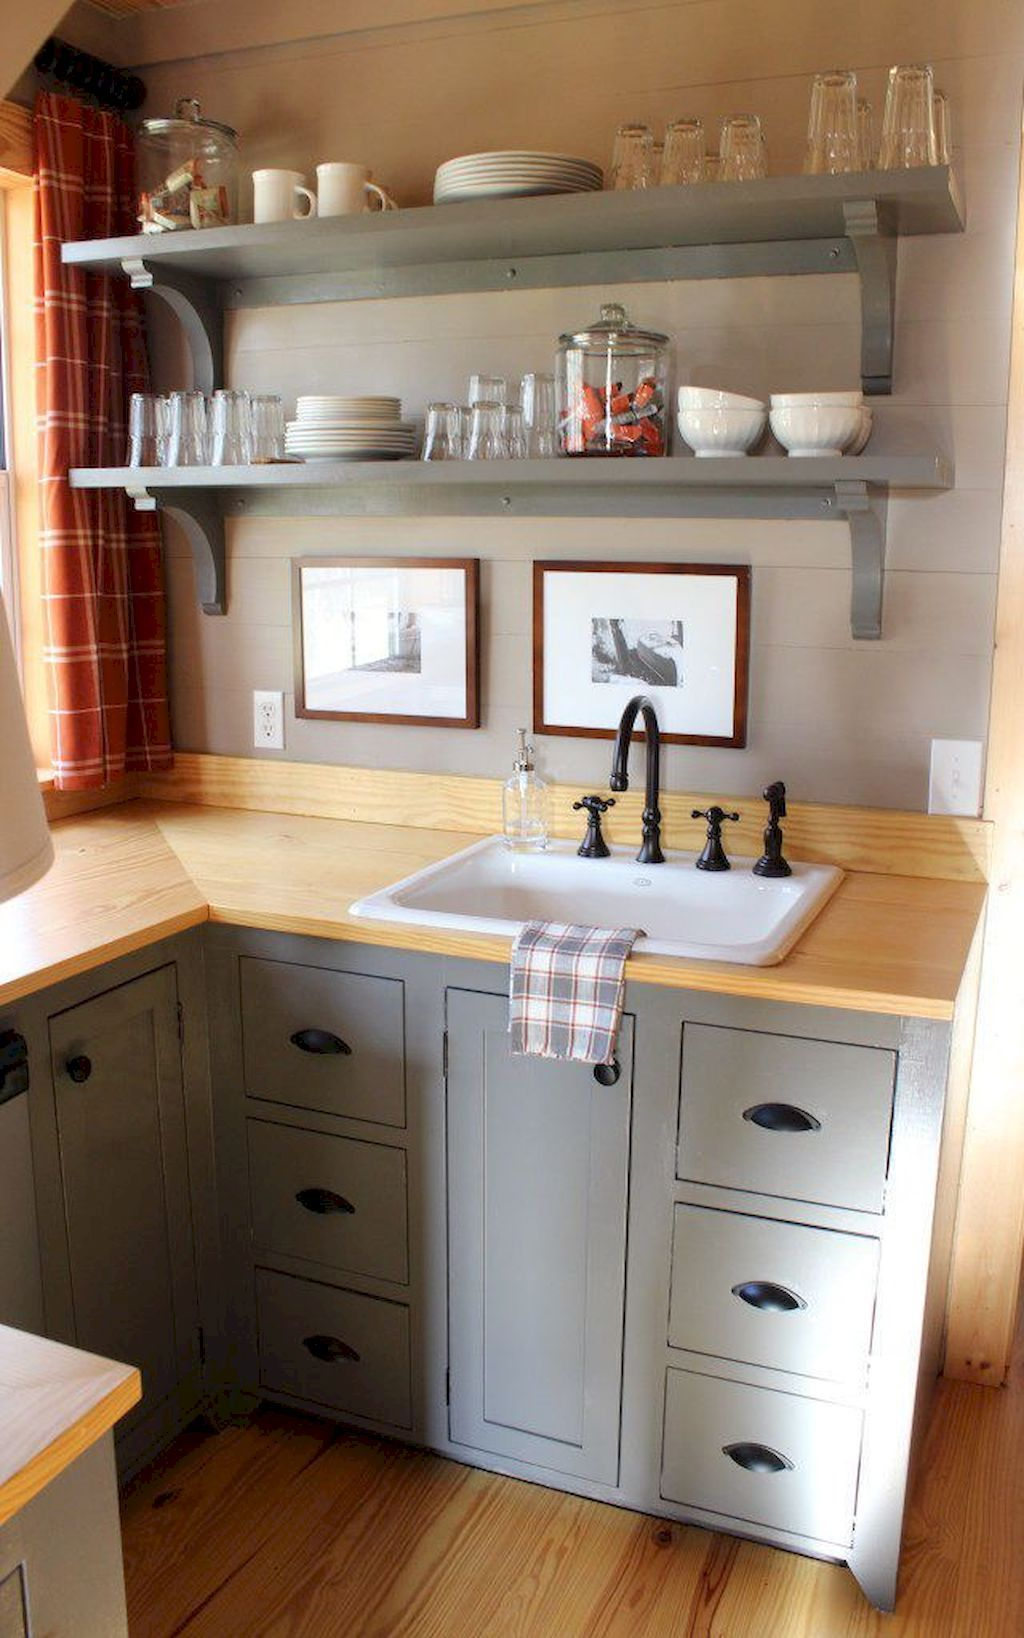 tiny house kitchen design and storege ideas decoremodel also creative designs custom remodel to inspire you rh pinterest